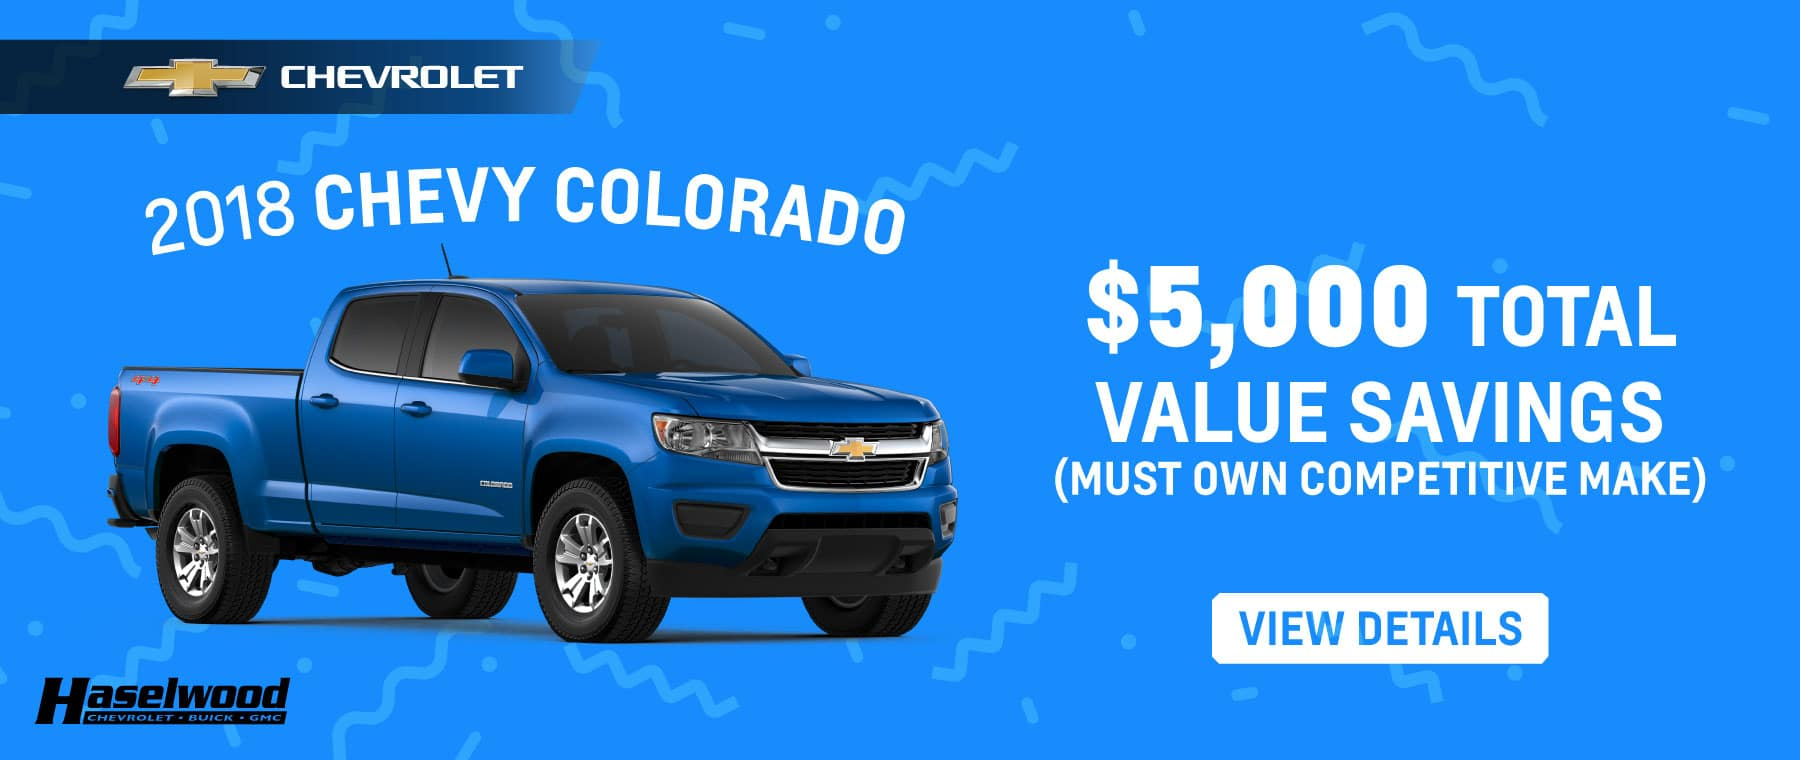 2018 Chevrolet Colorado   $5000 Total Value Savings (must own competitive make) Example: $2500 Price Reduction Below MSRP $2500 Total Cash Allowance (must own competitive make) $5000 TOTAL VALUE SAVINGS